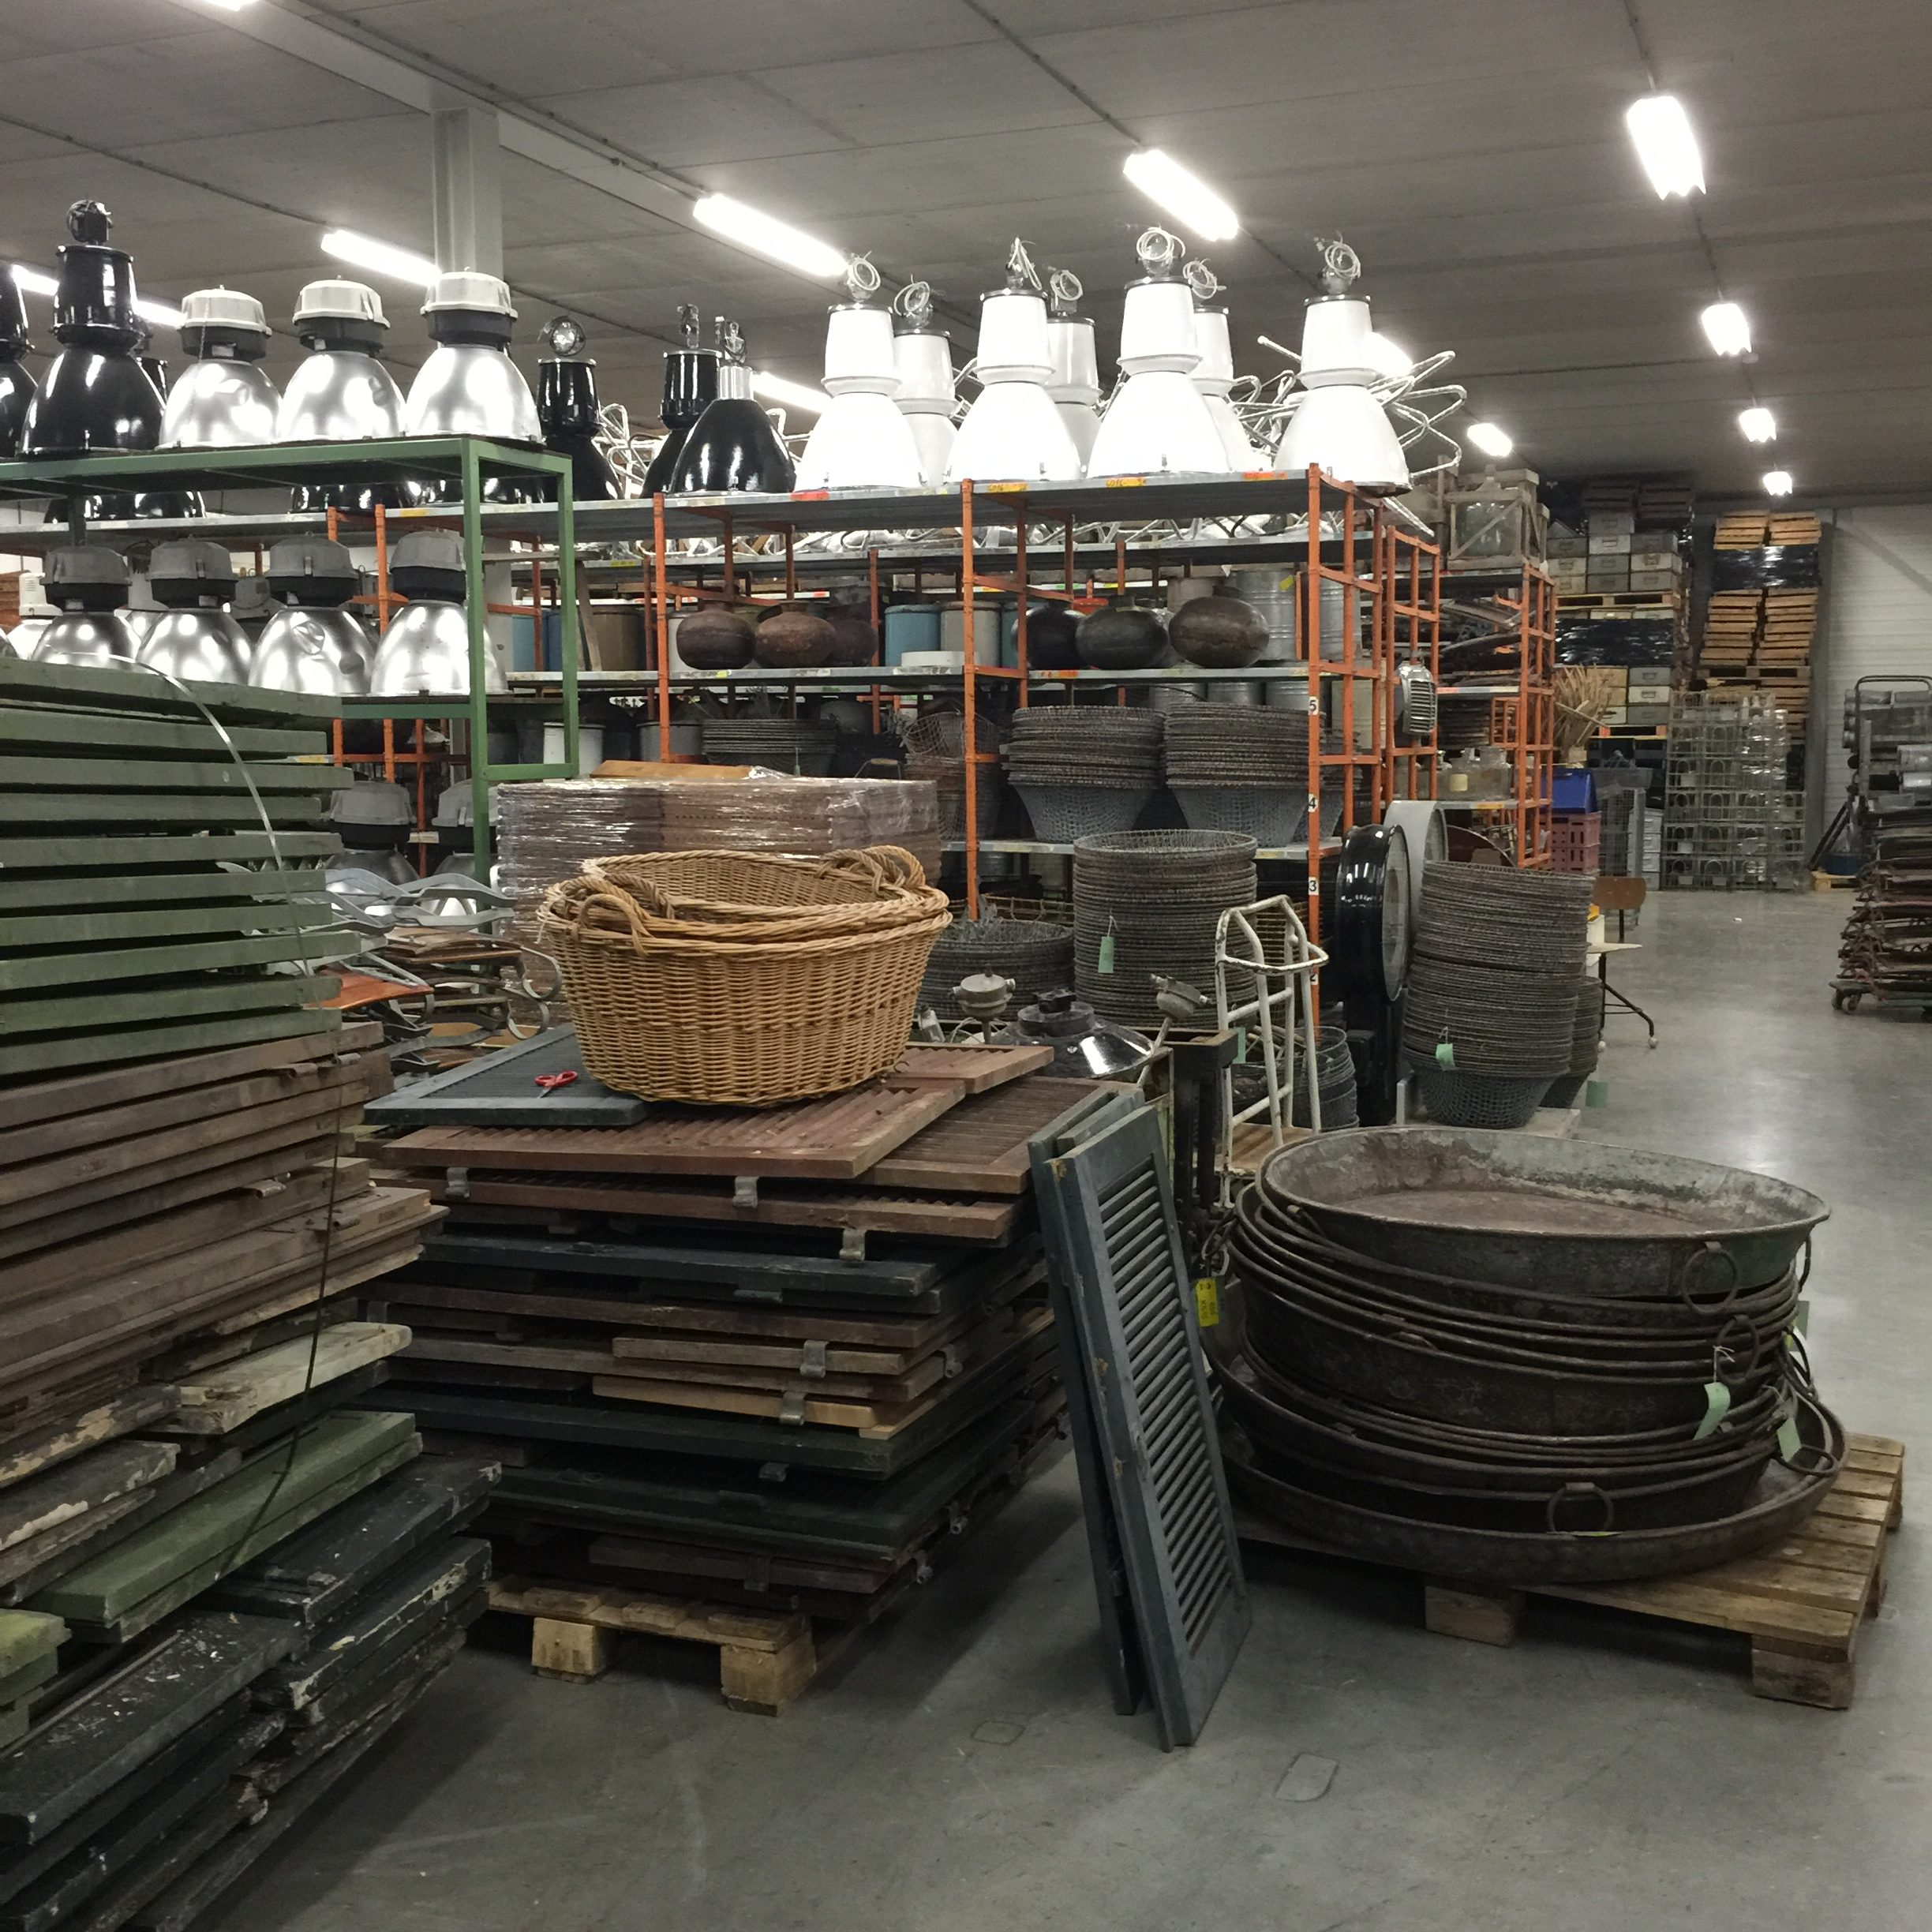 Industrial and vintage finds in Holland